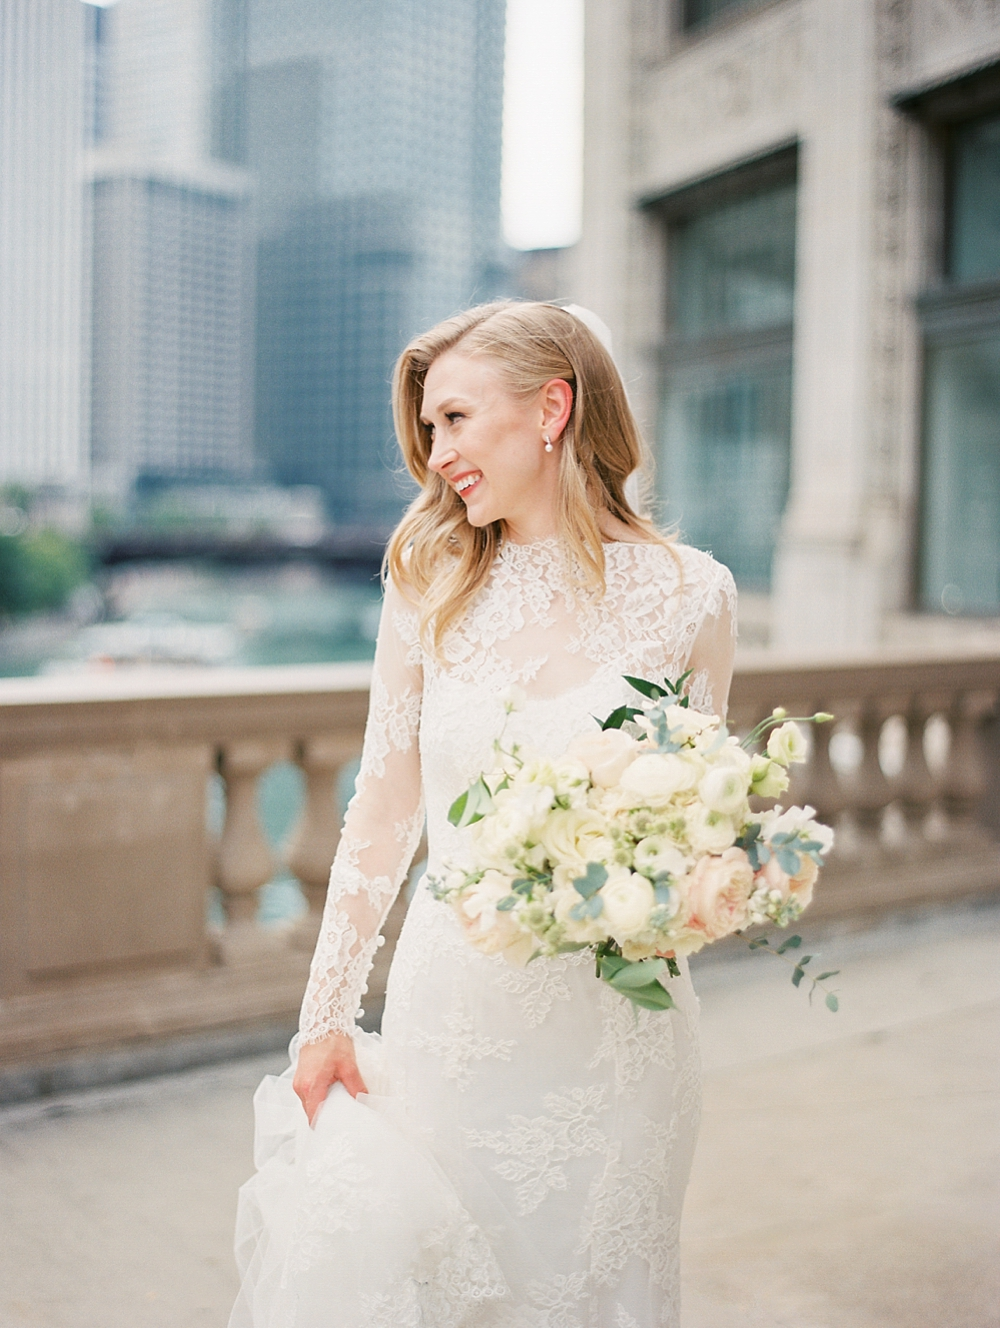 kristin-la-voie-photography-chicago-wedding-photographer-193